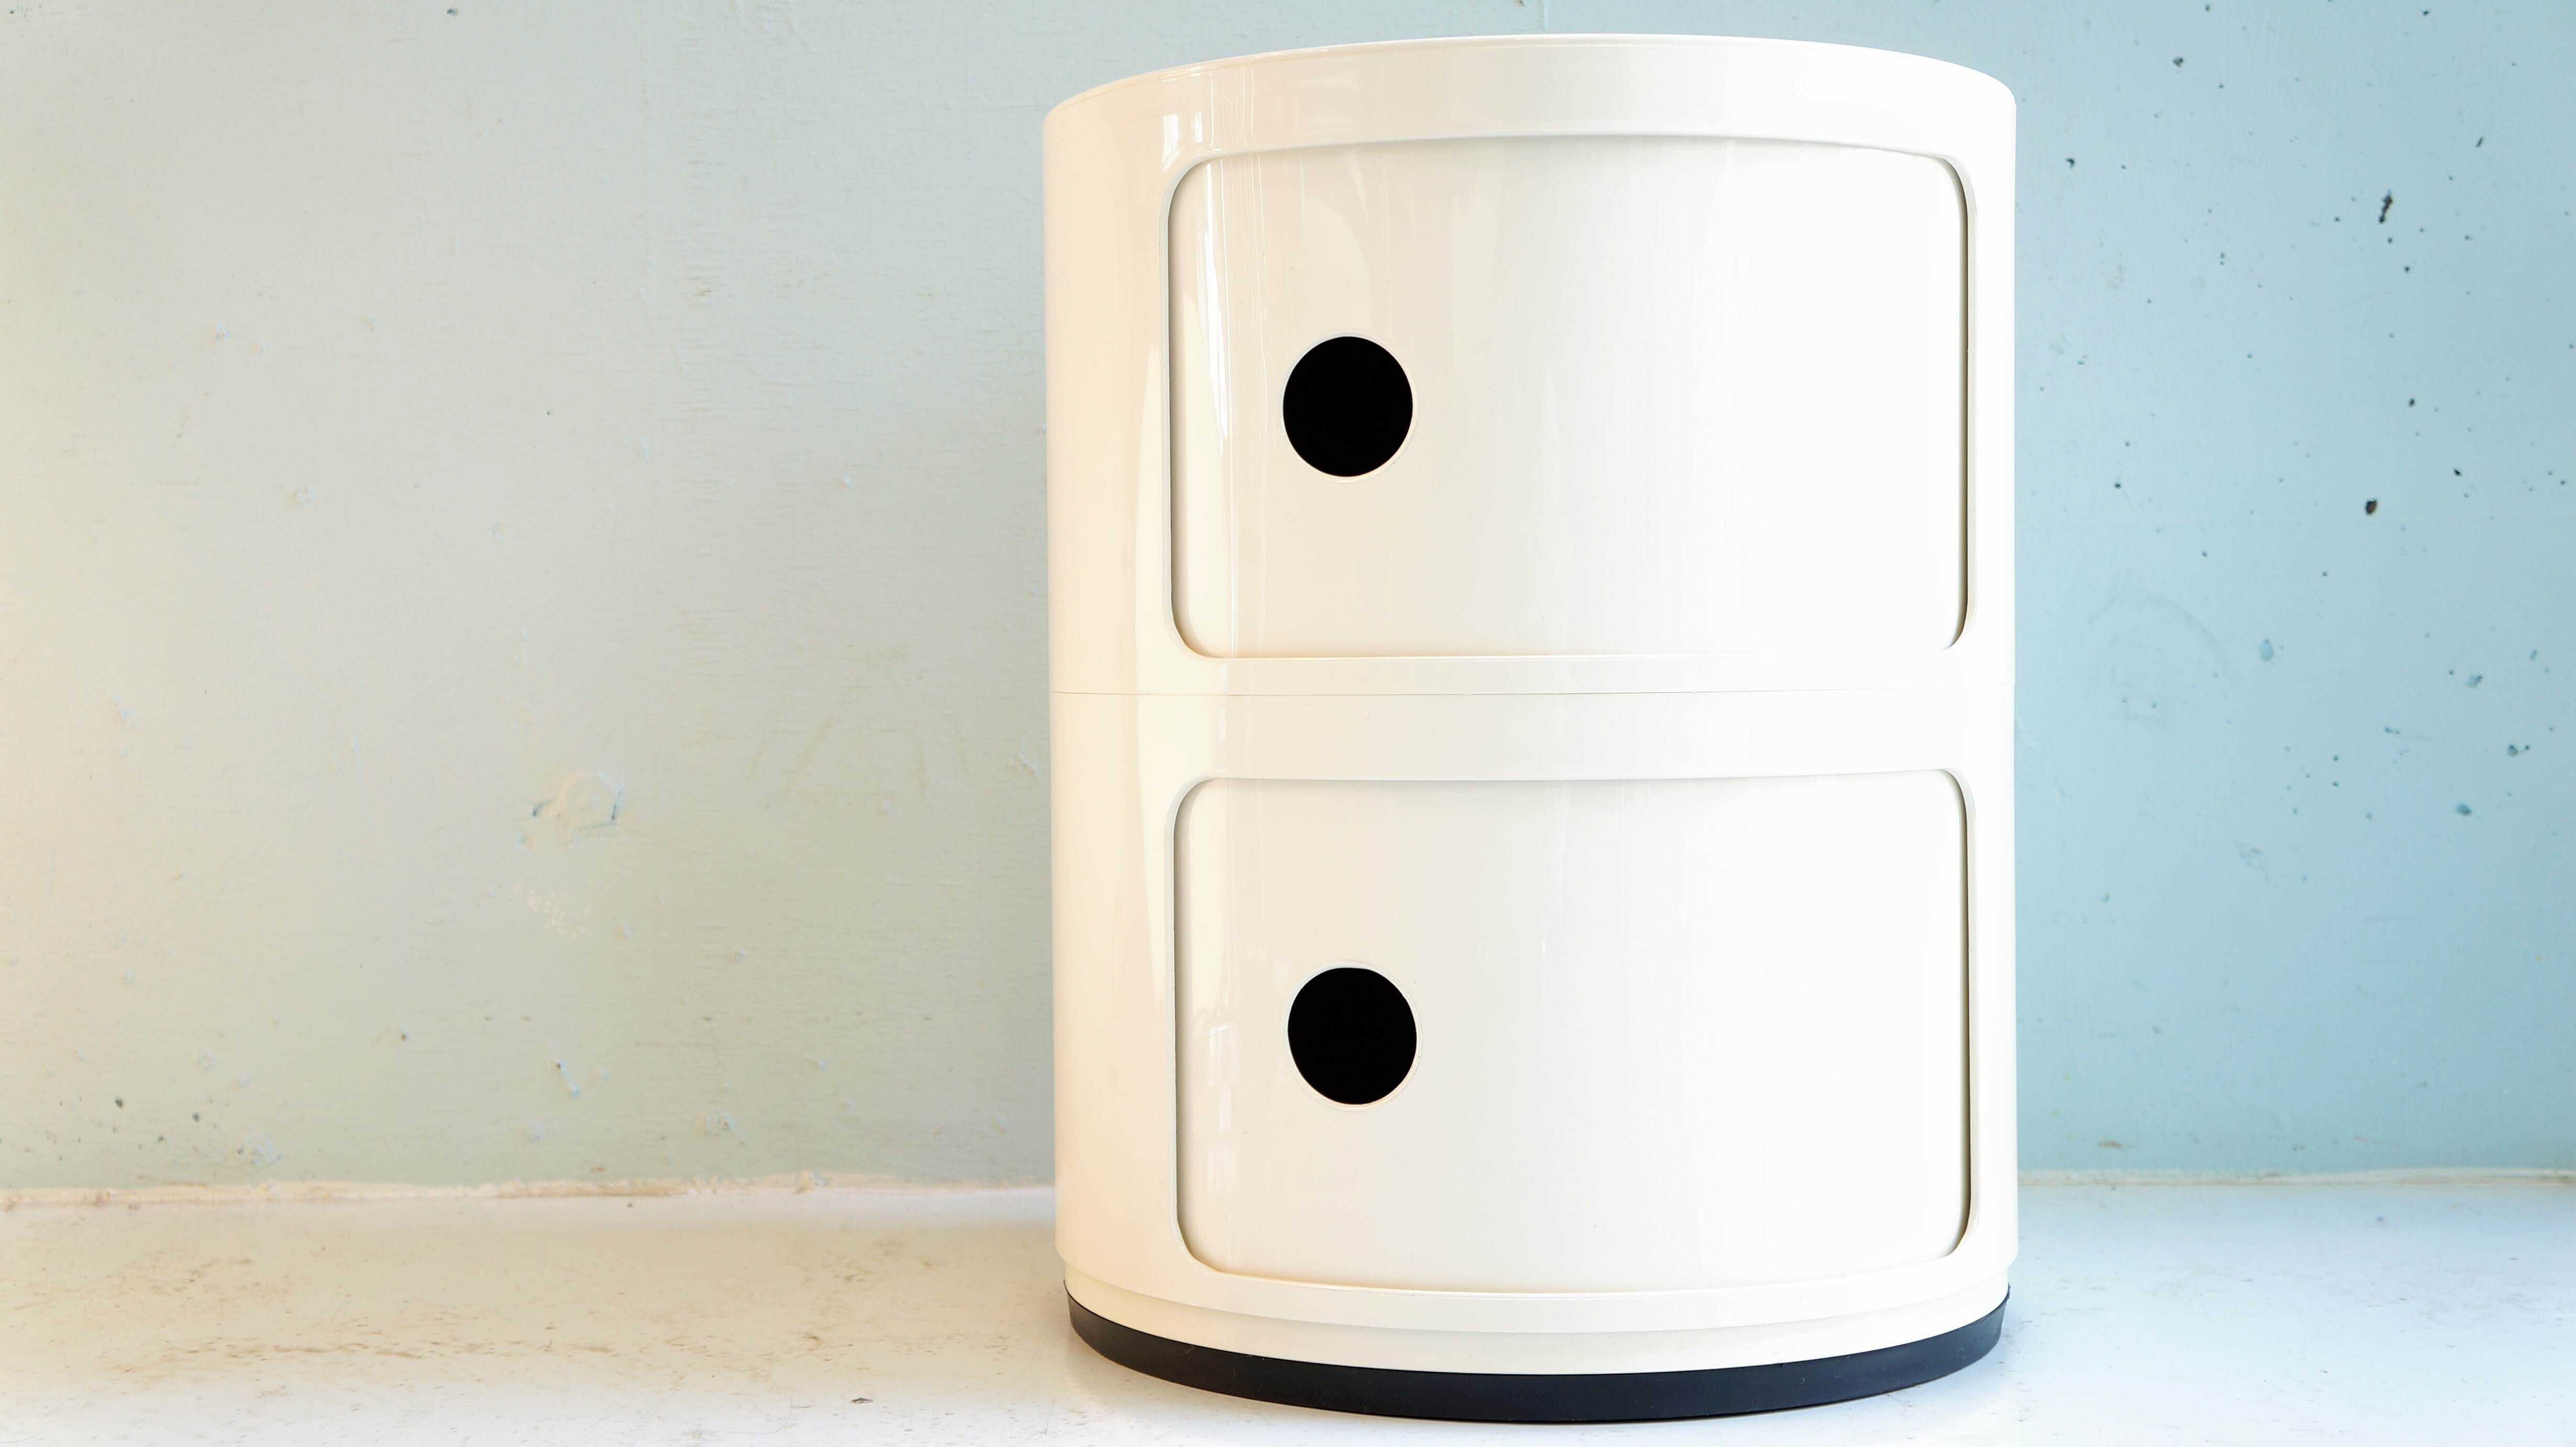 Kartell componibili 2 white designed by Anna Castelli Ferrieri/カルテル コンポニビリ2 白 アンナ・カステッリ・フェリエーリ デザイン